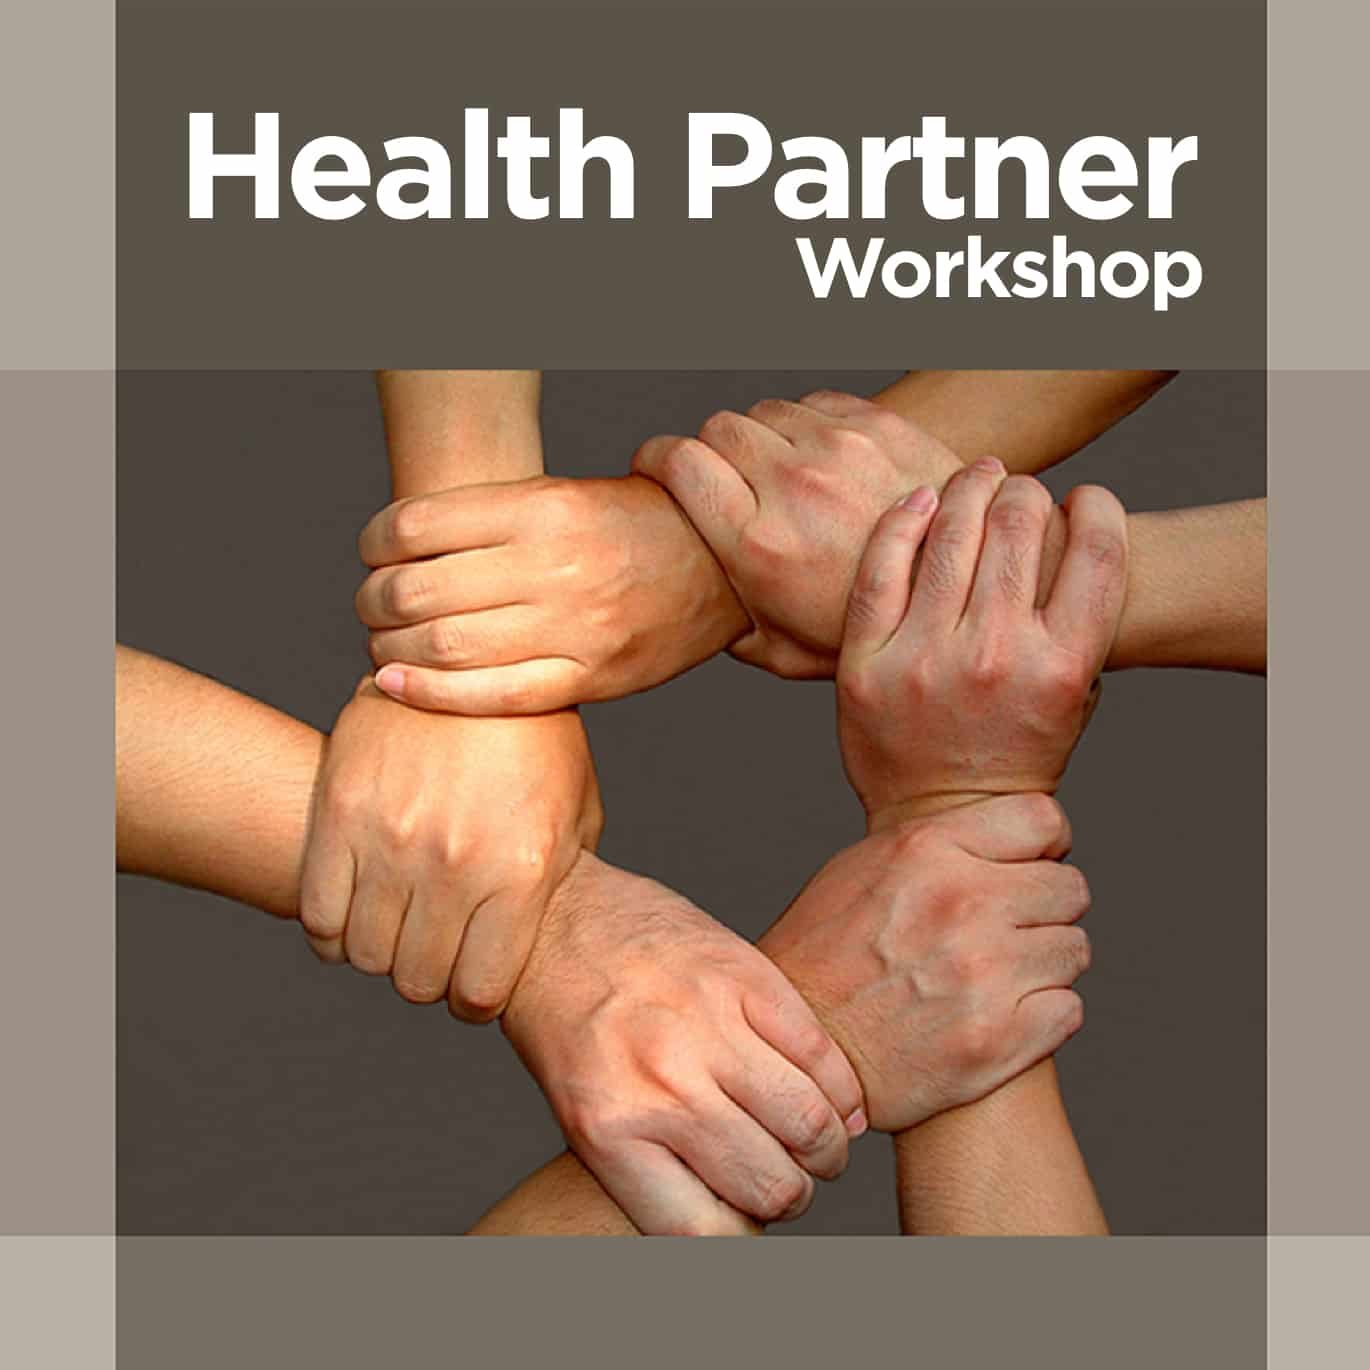 Health Partner Workshop